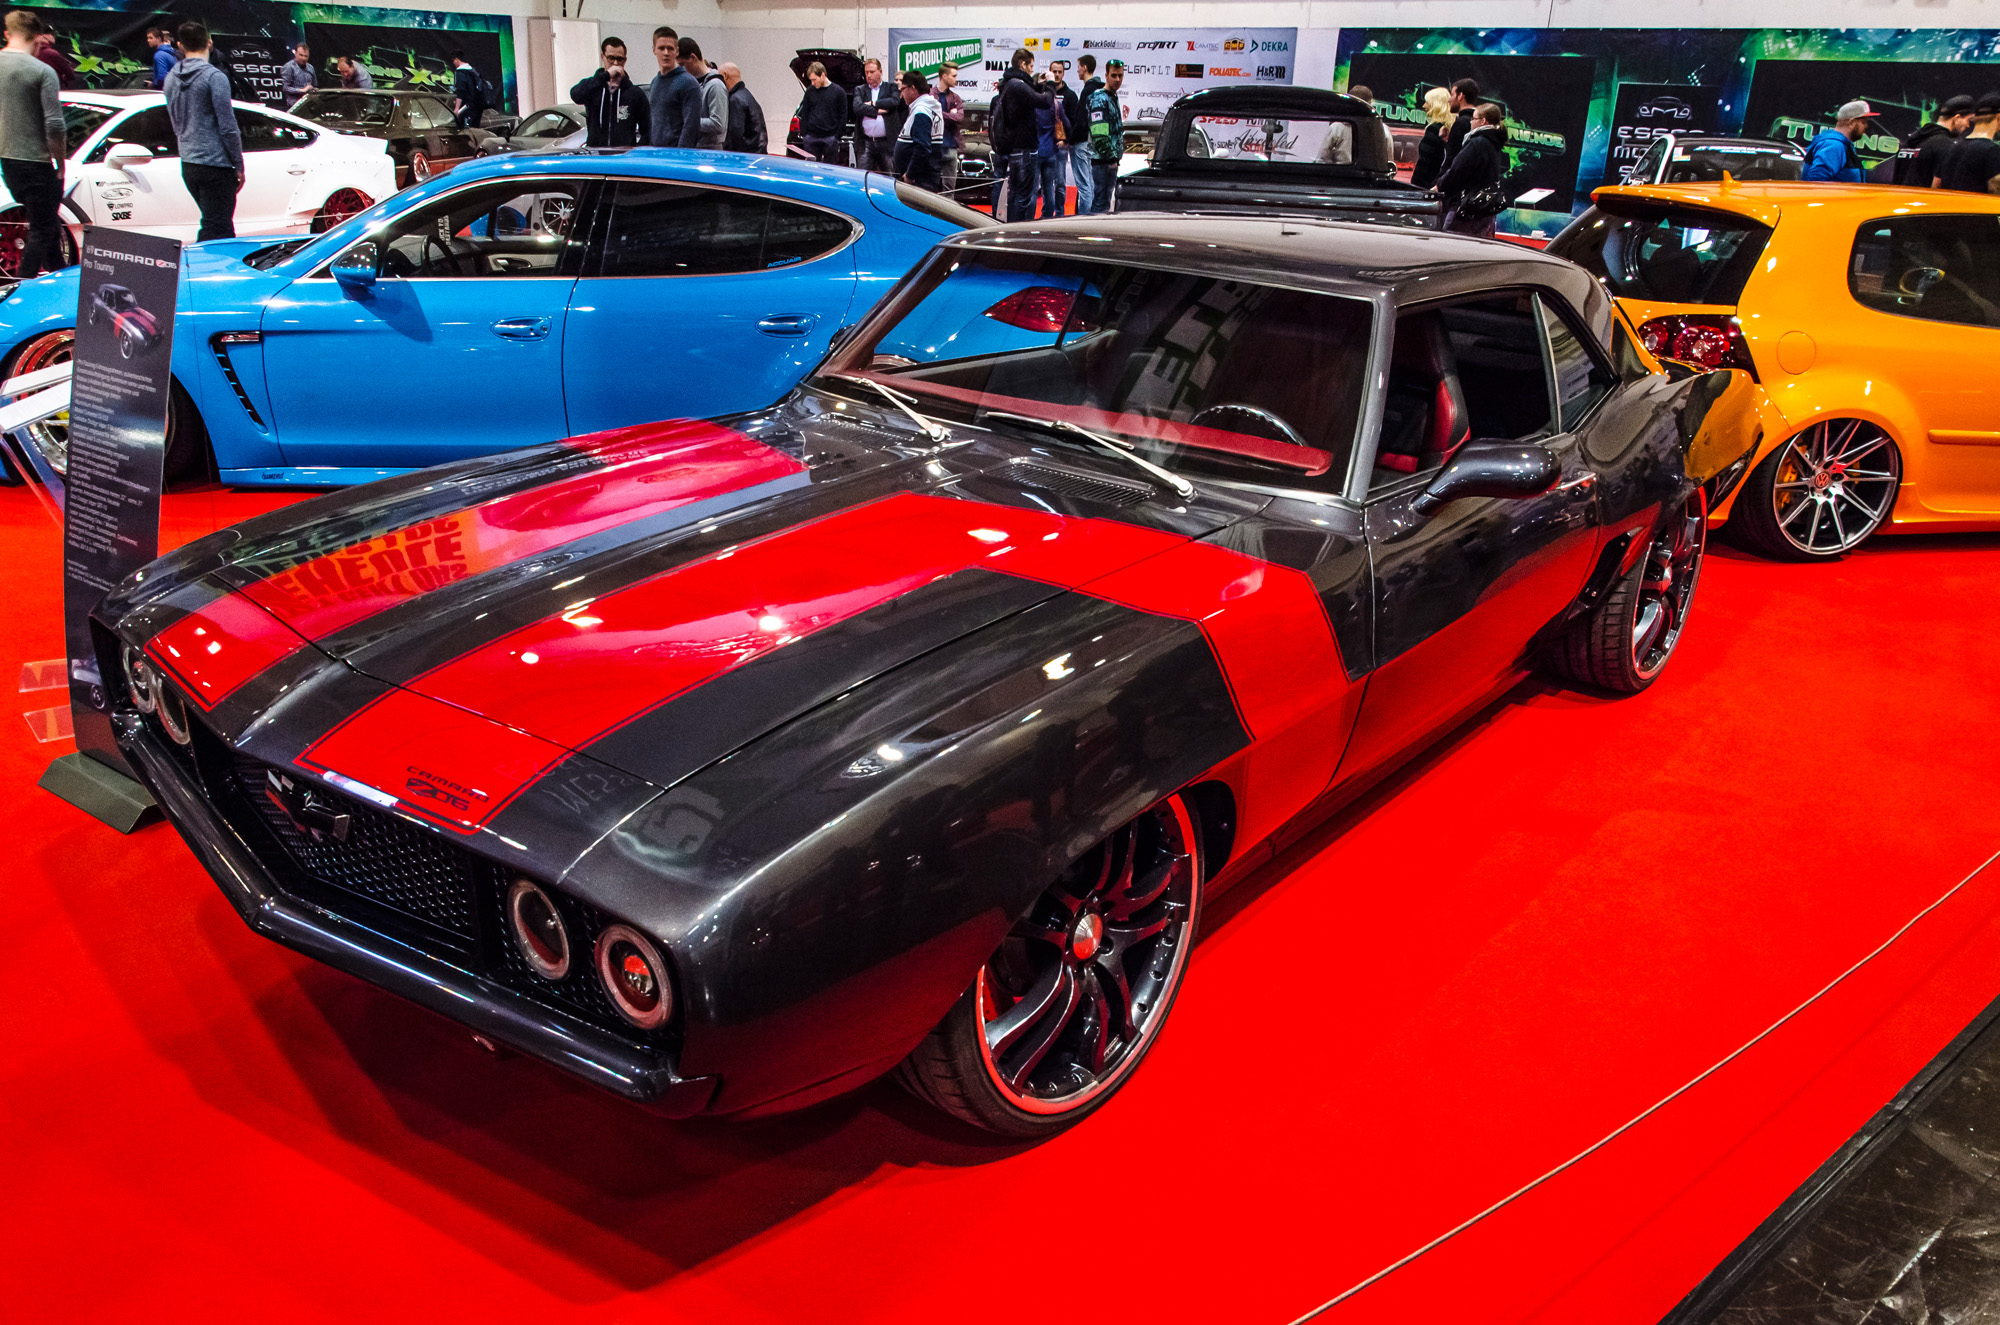 essen-motor-show-2015-preview-day-14